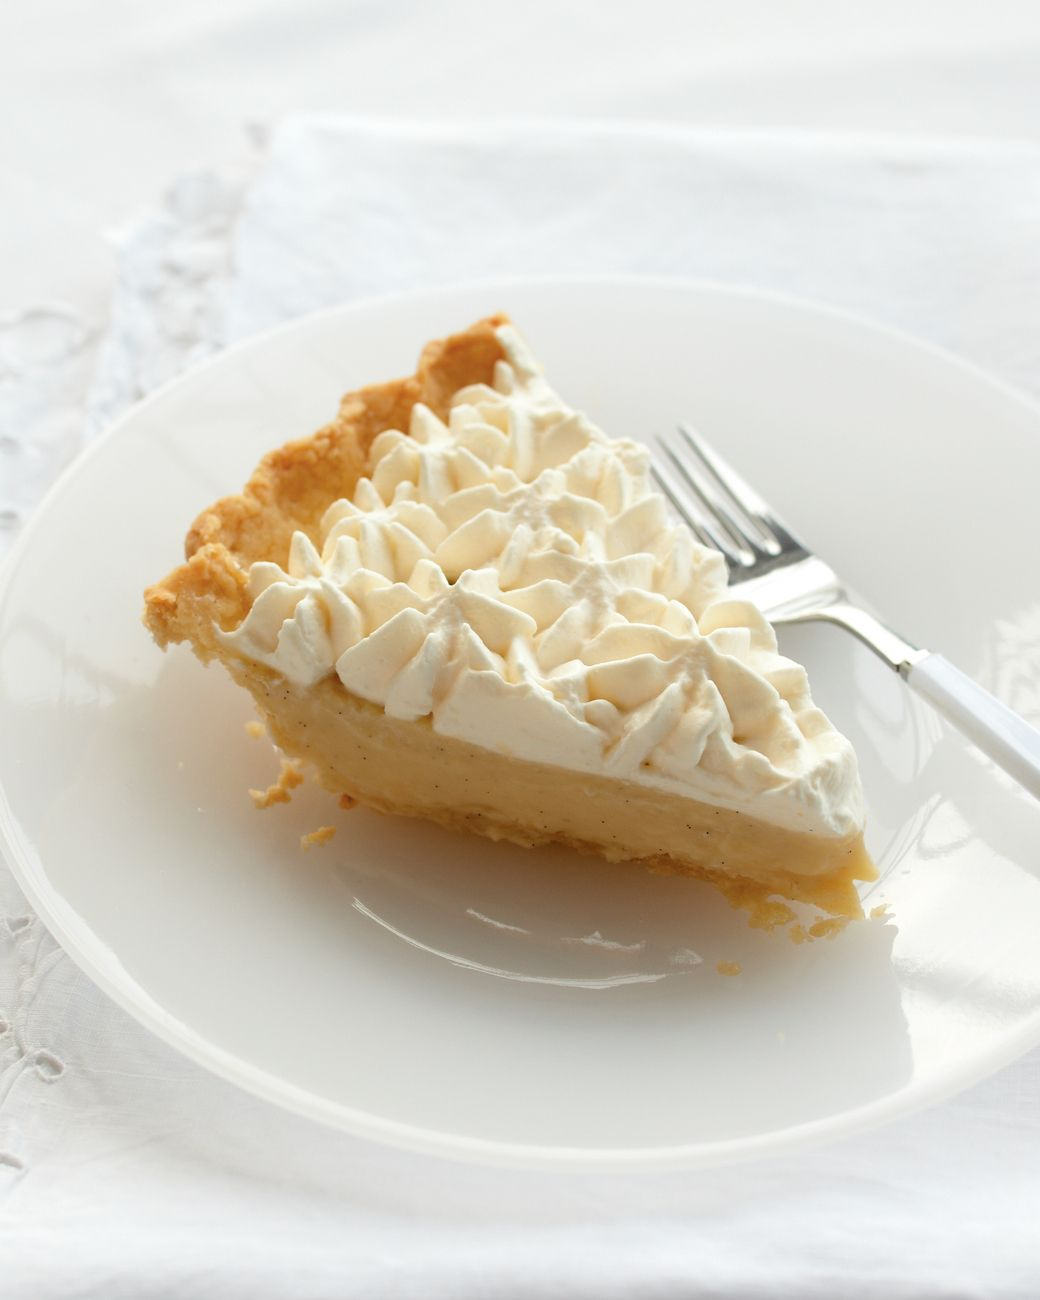 Consider this pie from our Pies & Tarts book comfort food for grown-ups. Rum adds a spirited kick to both the custard filling and the whipped cream topping. A vanilla bean does double duty, as well: Its seeds dot the filling, and the pod infuses the whipped cream topping with a delicate flavor.